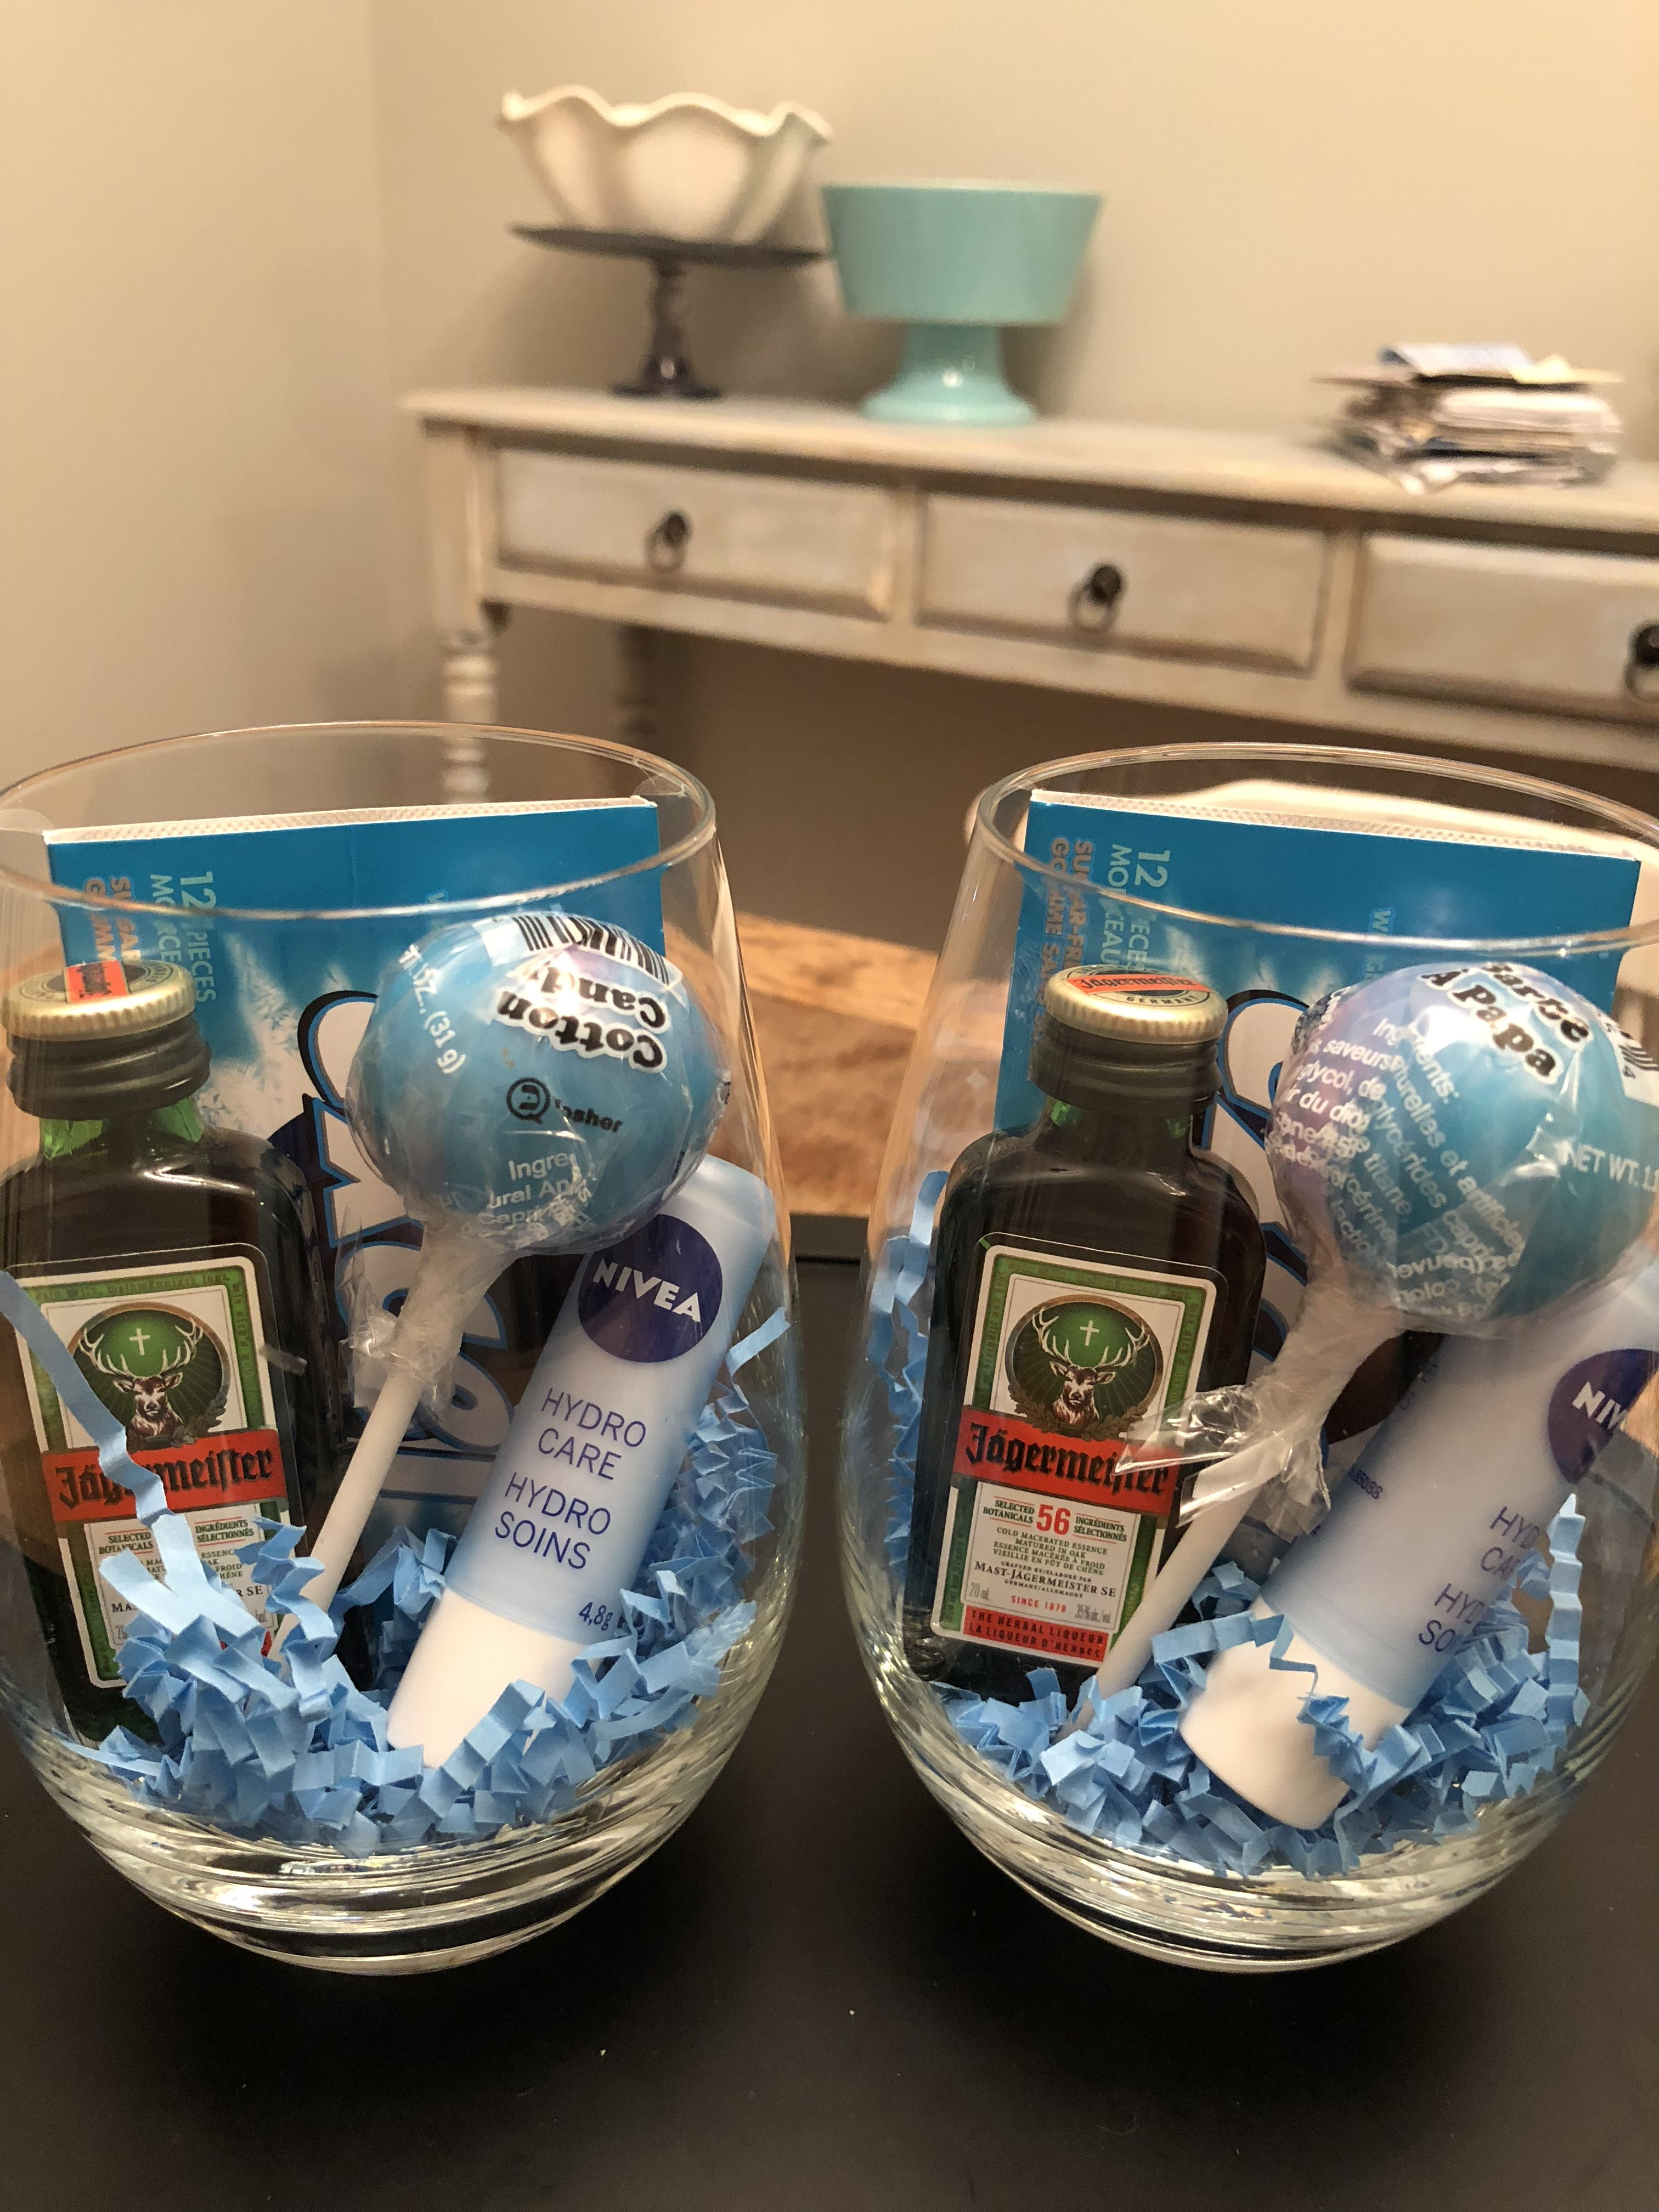 Prizes For Baby Shower Games Coed : prizes, shower, games, Shower, Prizes, Games, Prizes,, Gifts, Guests,